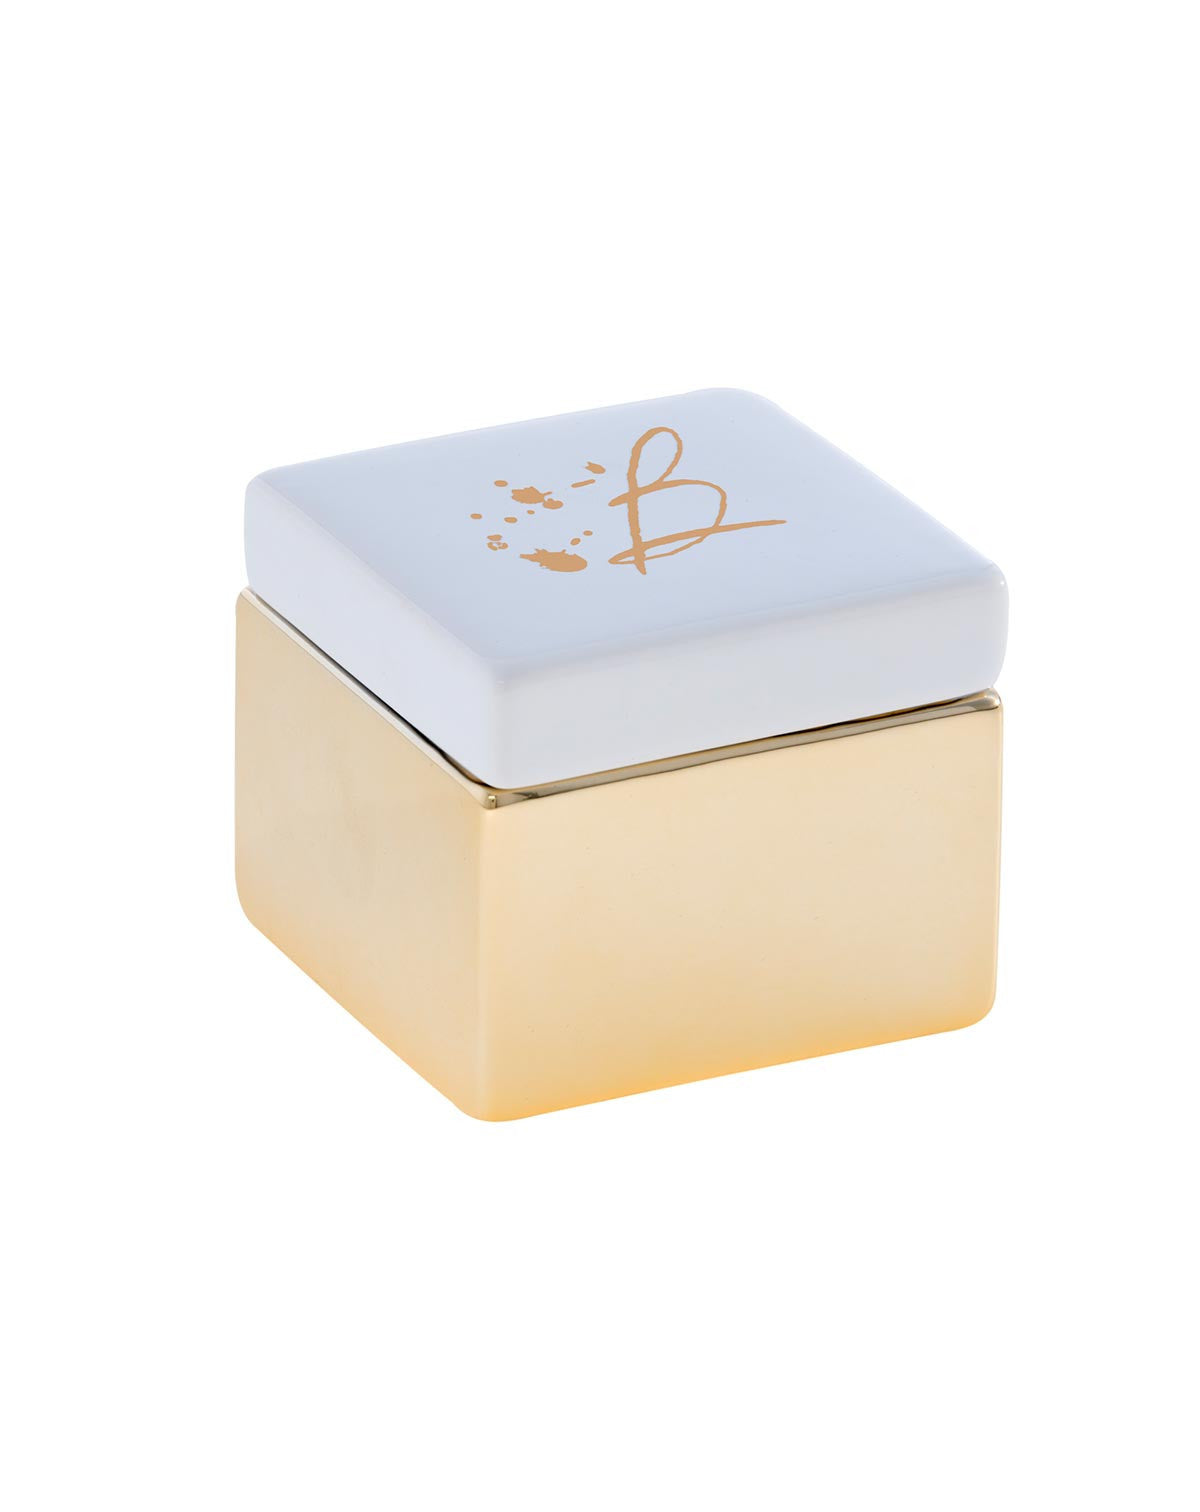 Fashionest Fashionest GoldWhite Initial Small Jewelry Box